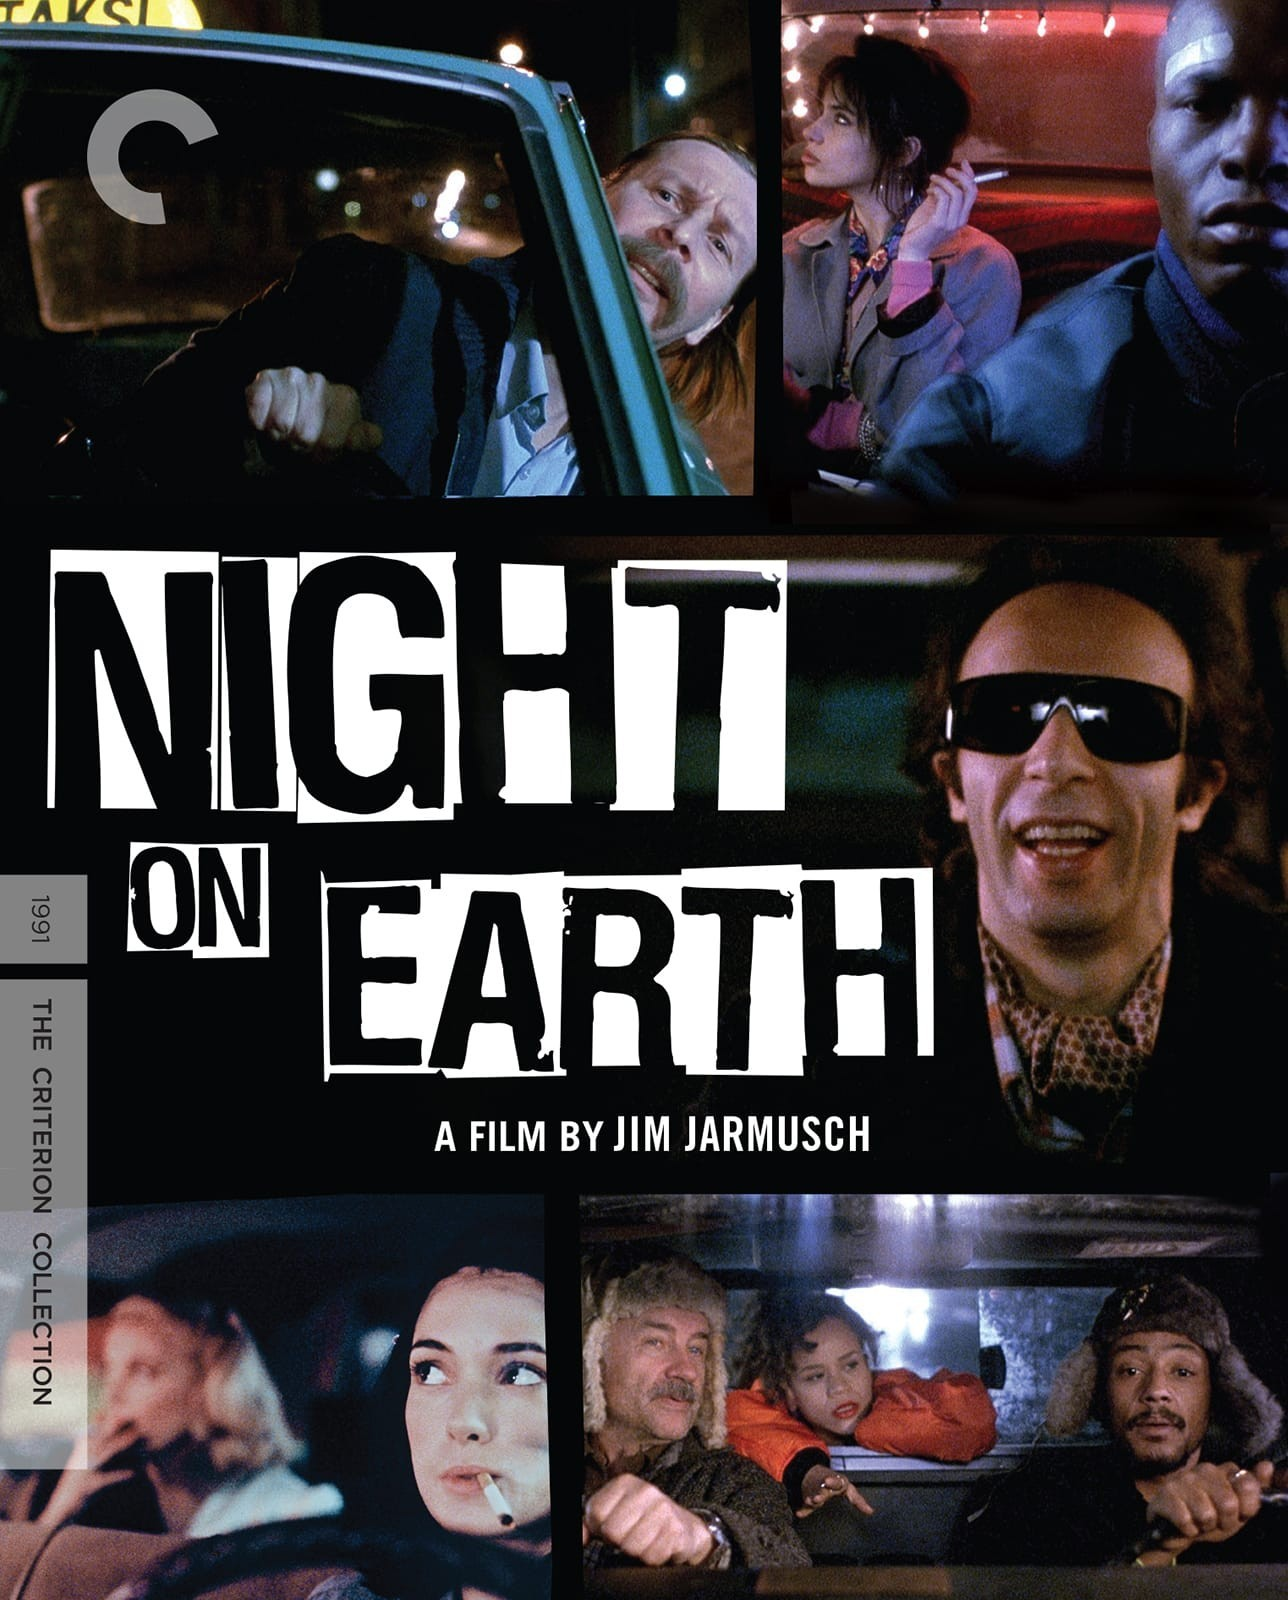 Night on Earth (The Criterion Collection)(Blu-ray)(Region A)(Pre-order / Apr 9)